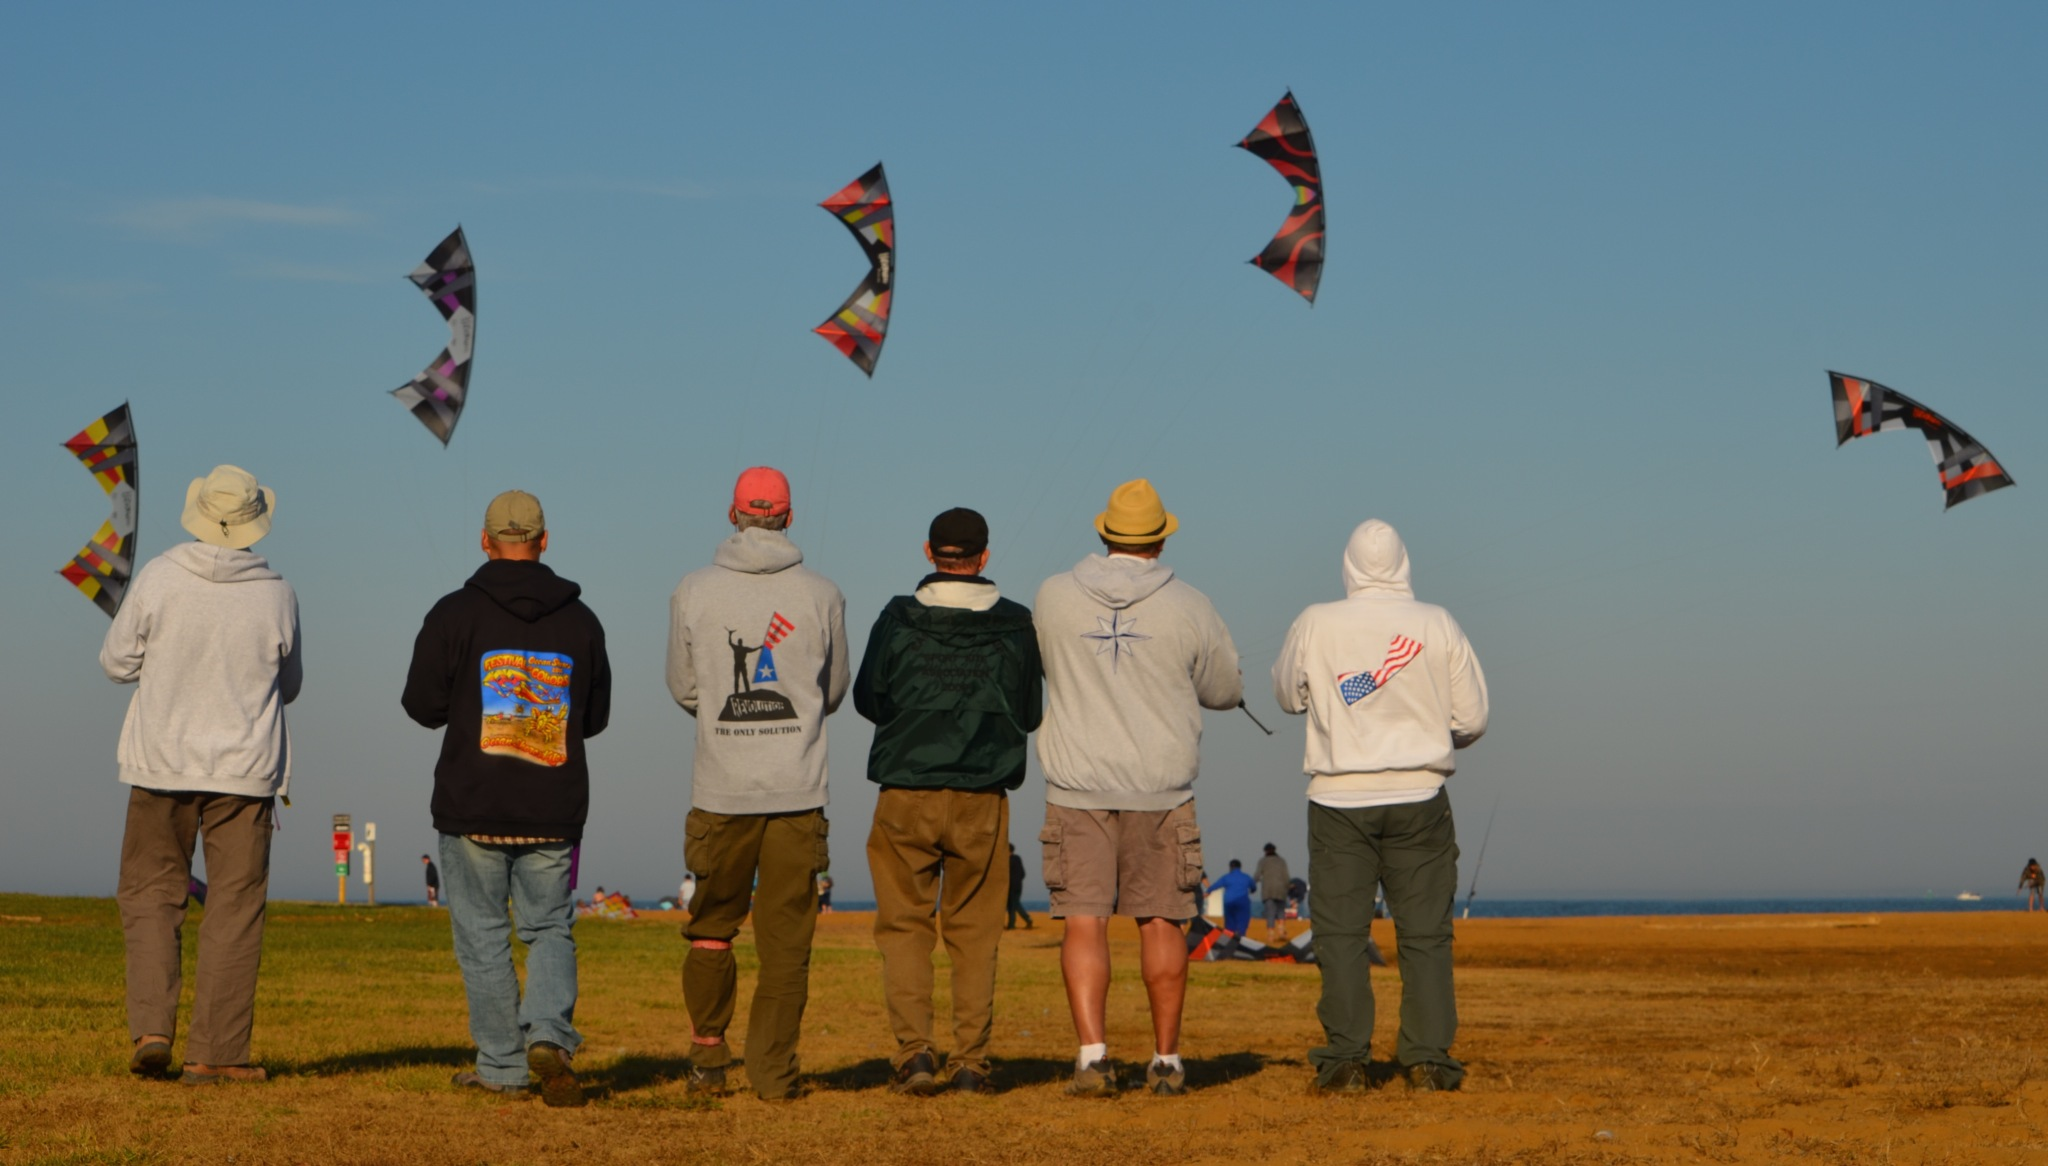 Sport Kites on The Bay by RockFishPhotography21037